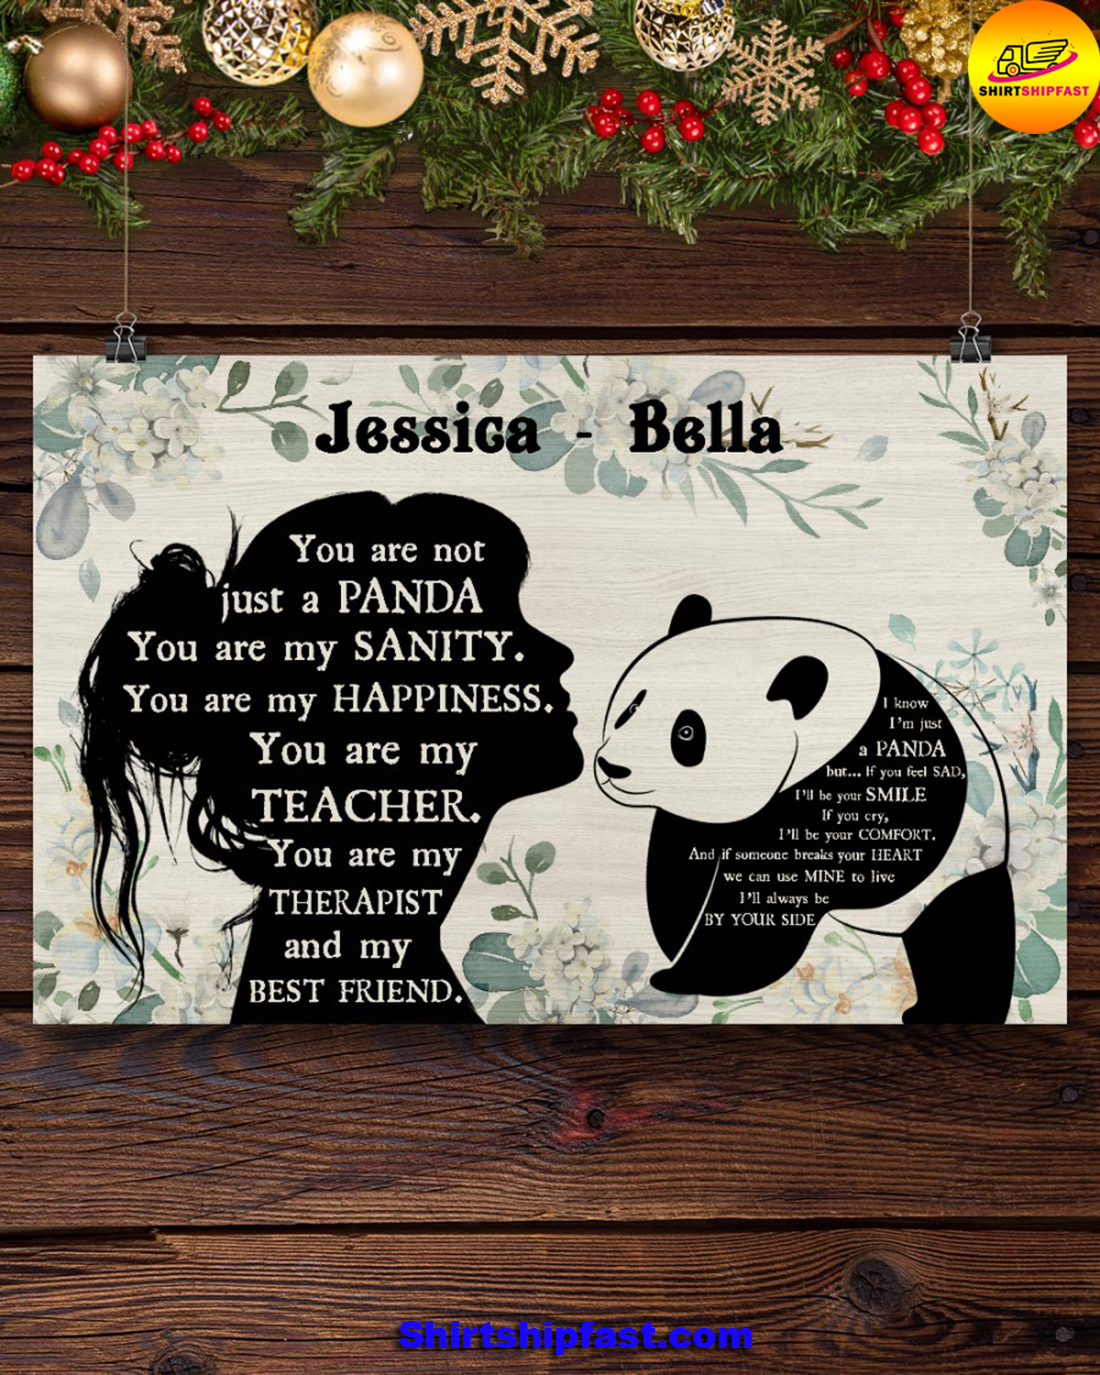 You are not just a panda personalized panda lover poster - Picture 3